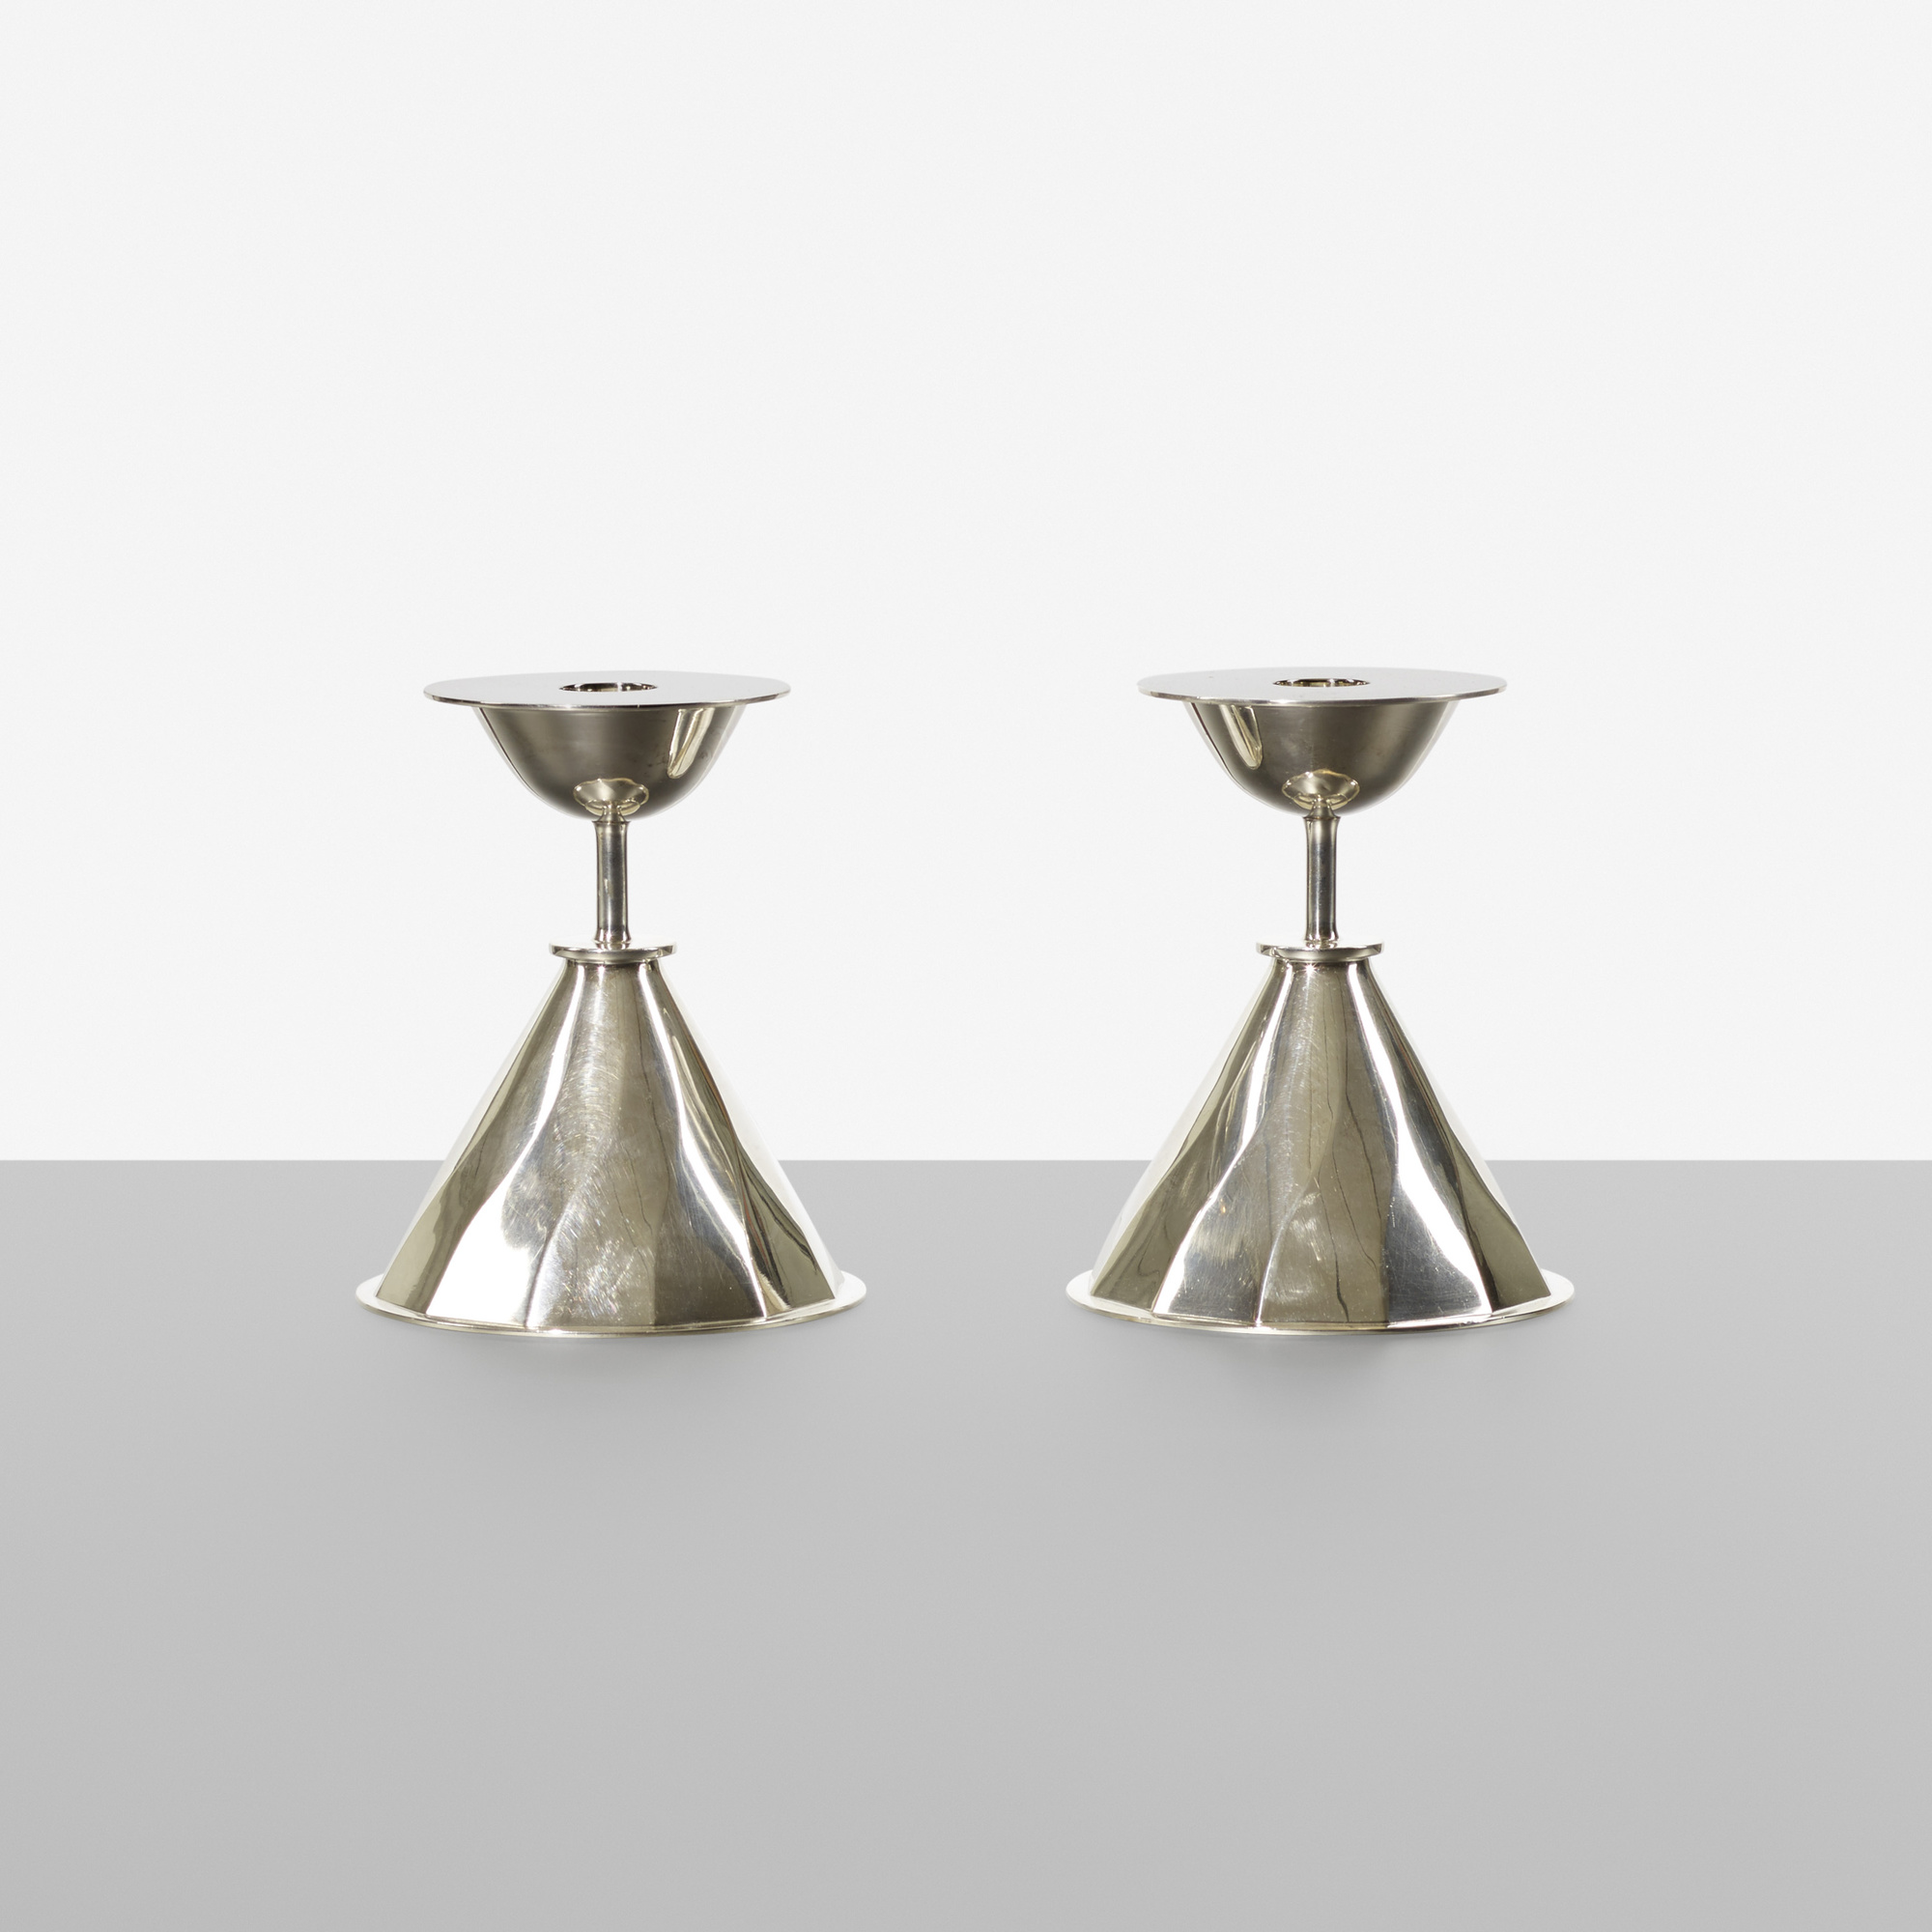 142: Carl Nyströmer / candlesticks, pair (1 of 1)